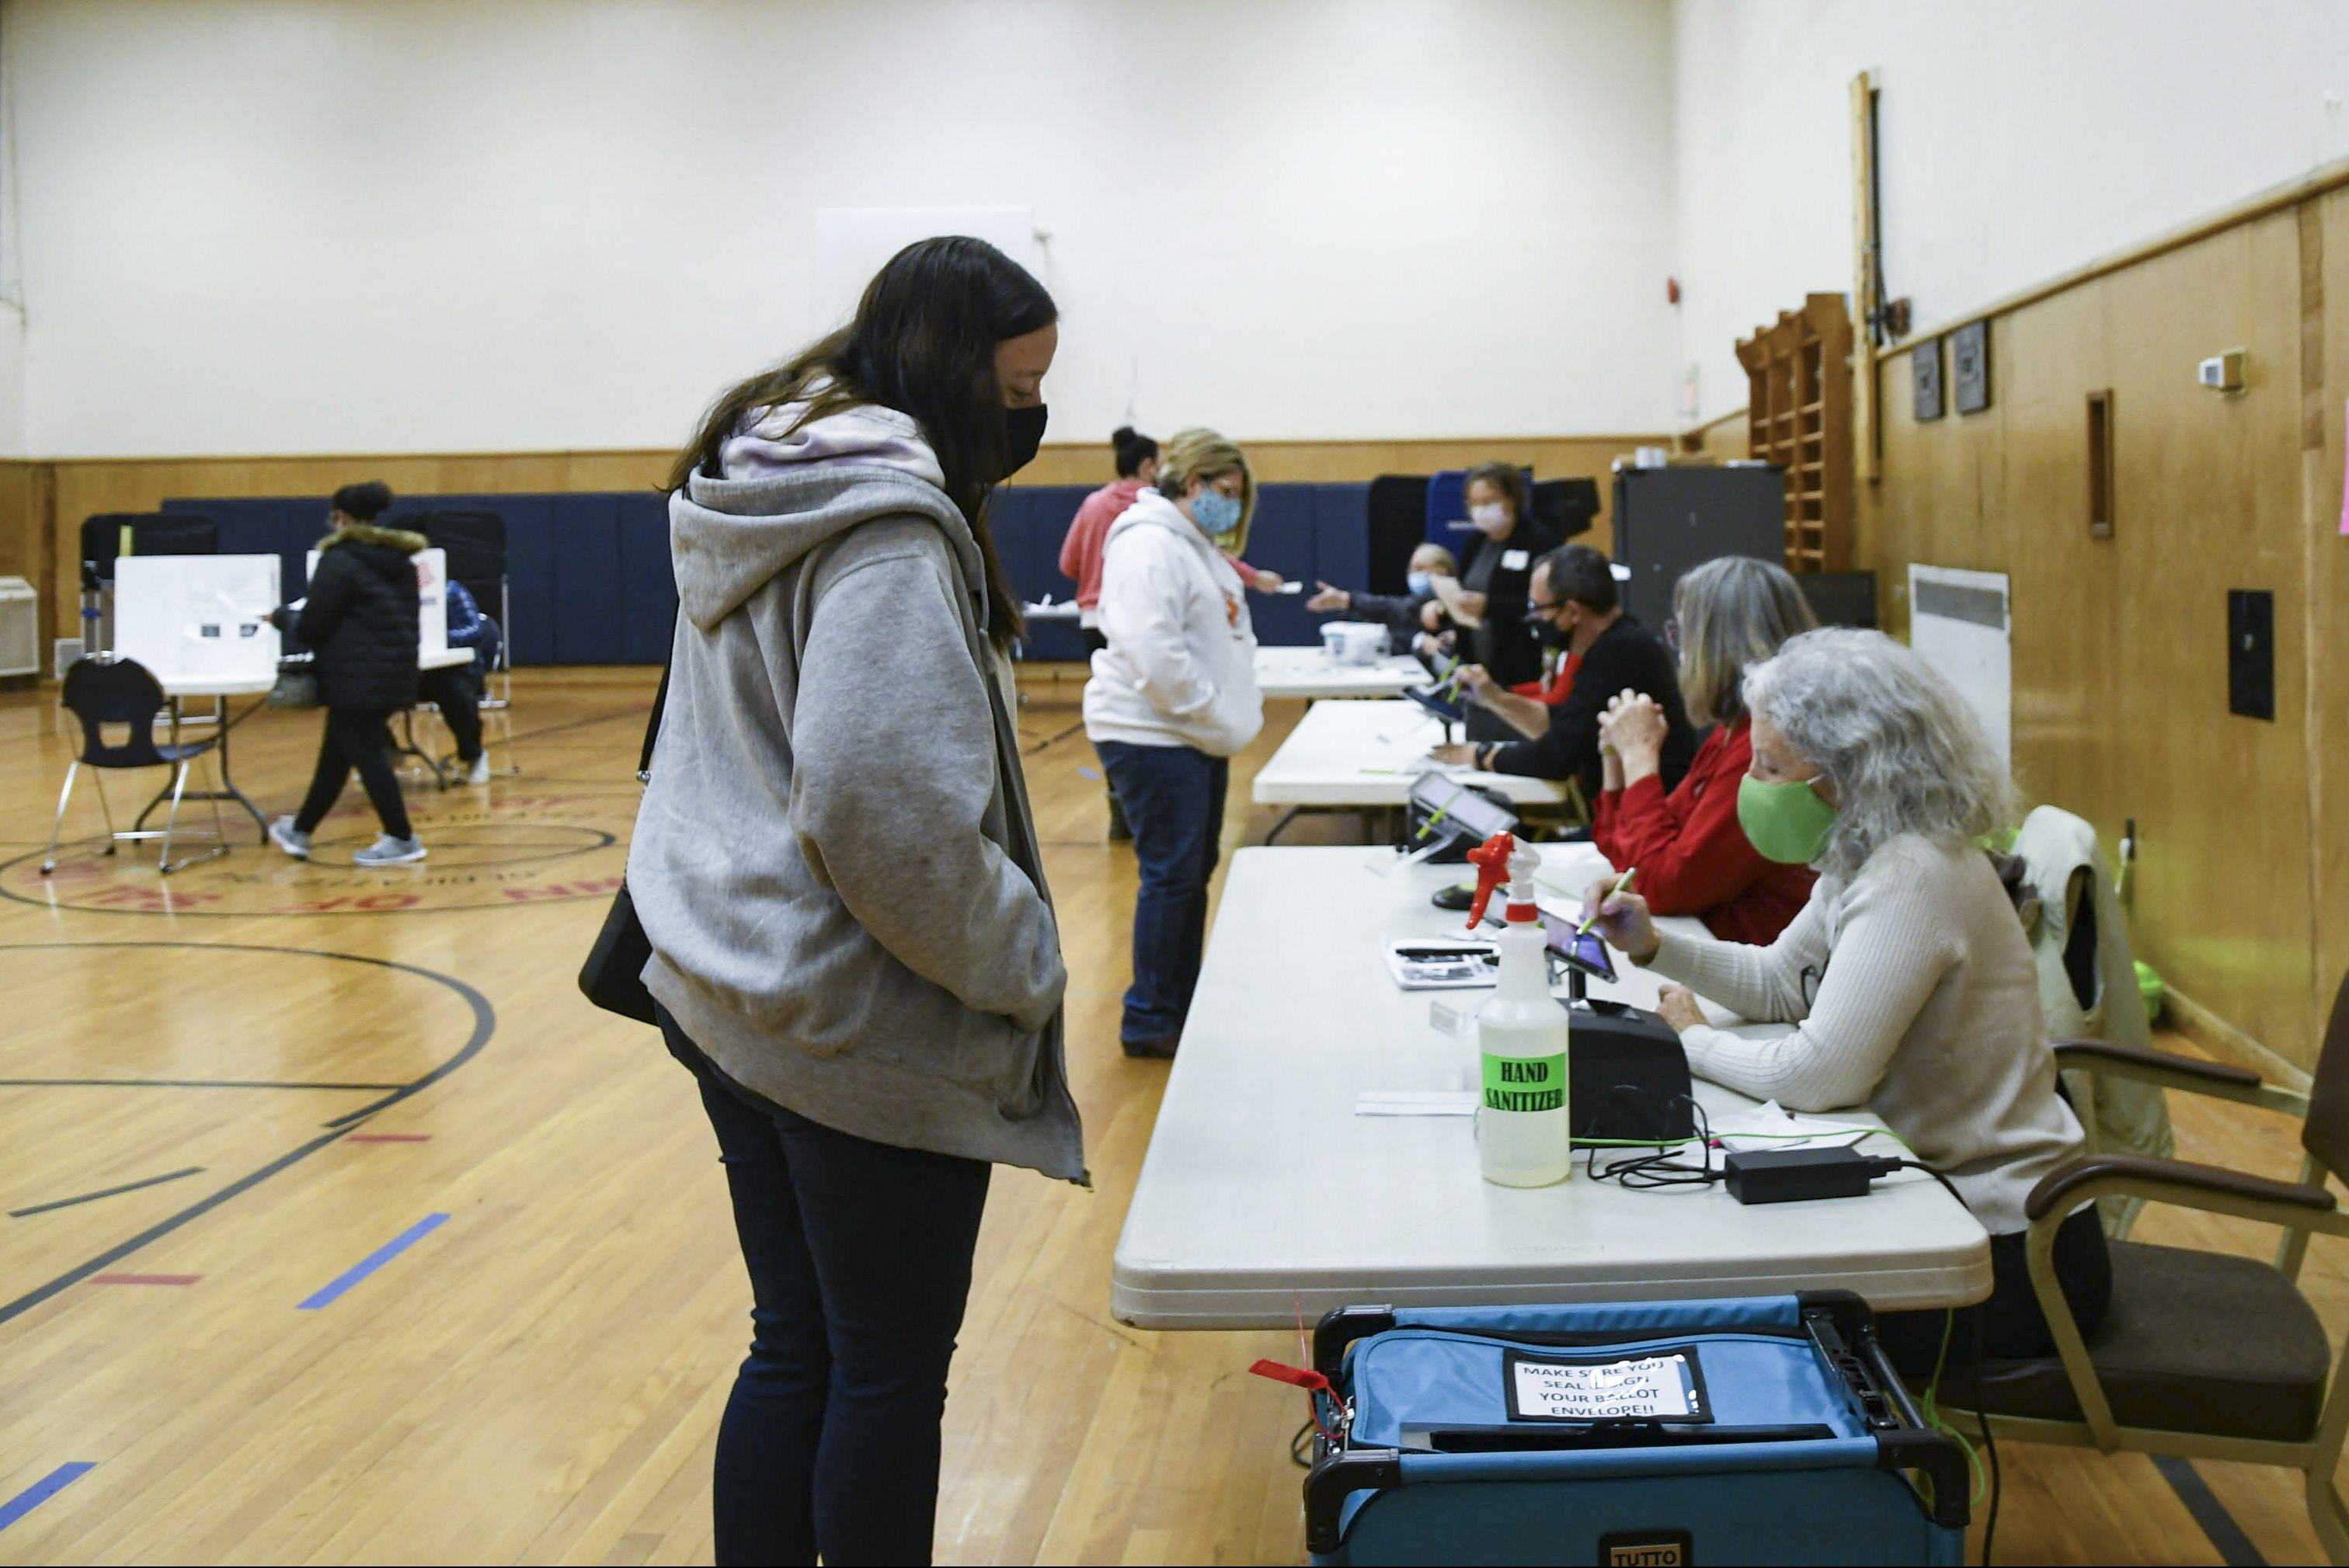 A voter checks in at the Salina Town Hall polling station before casting their ballot.